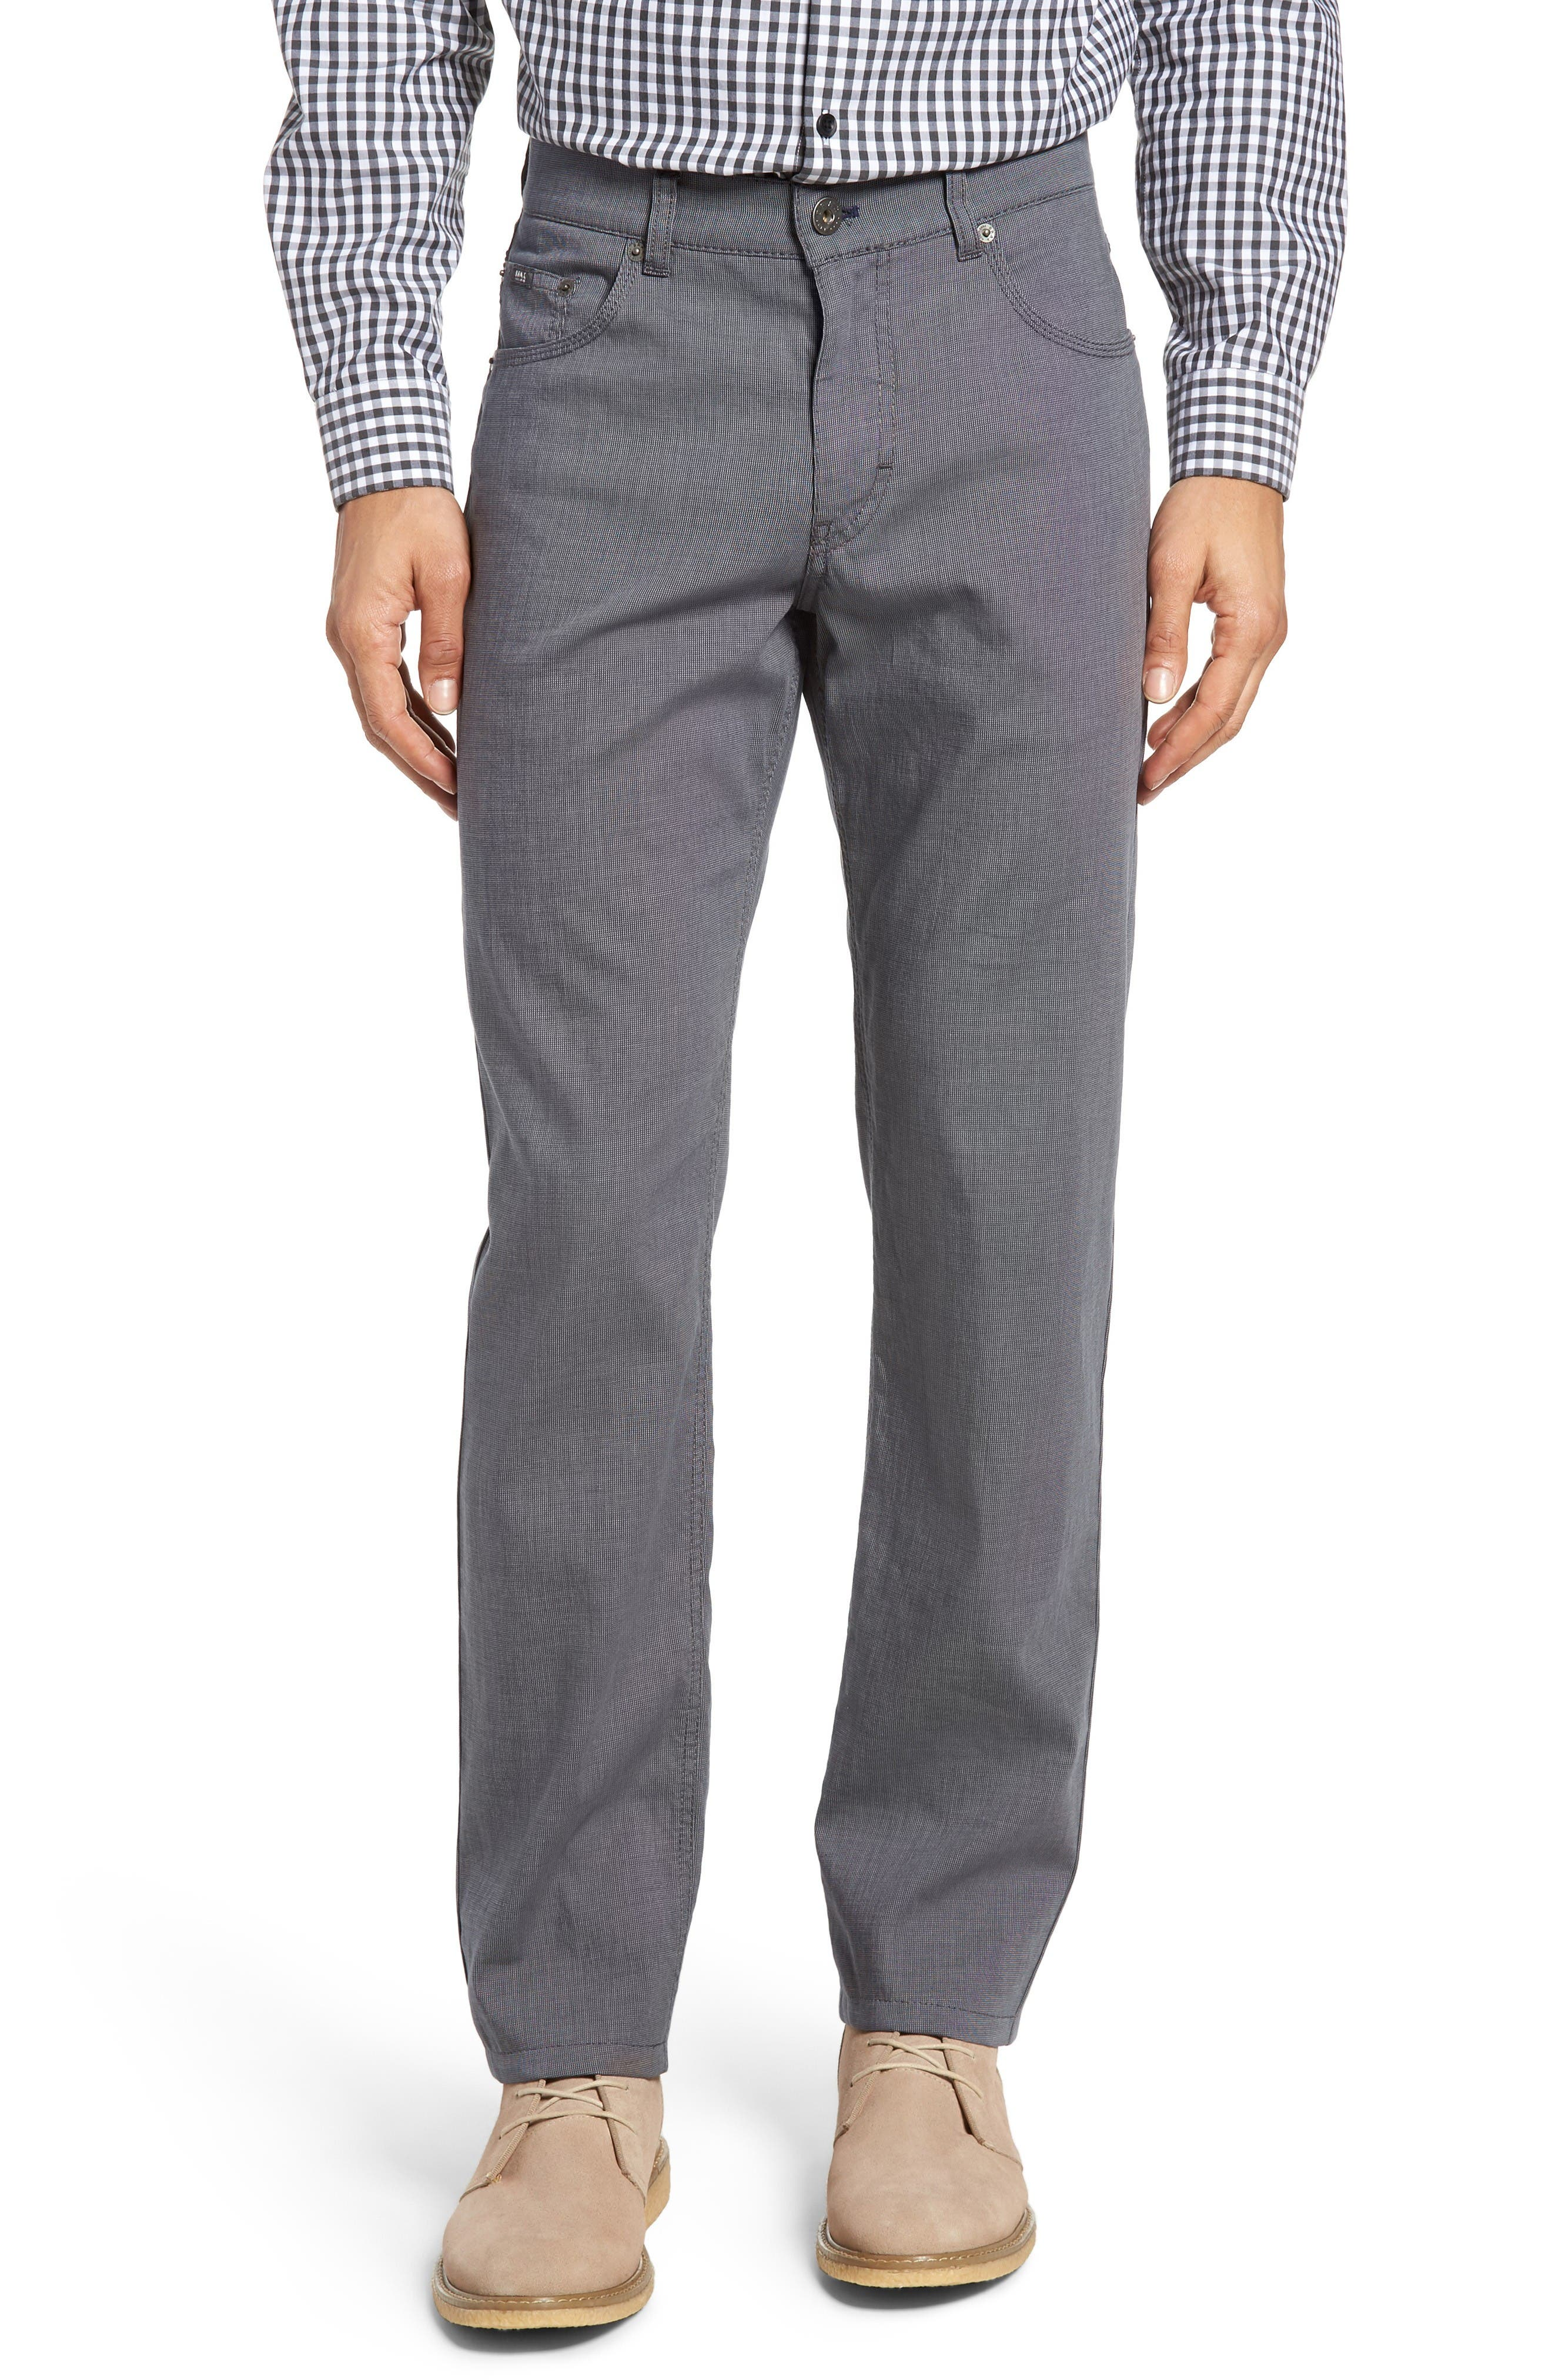 Sensation Stretch Trousers,                         Main,                         color, Graphite